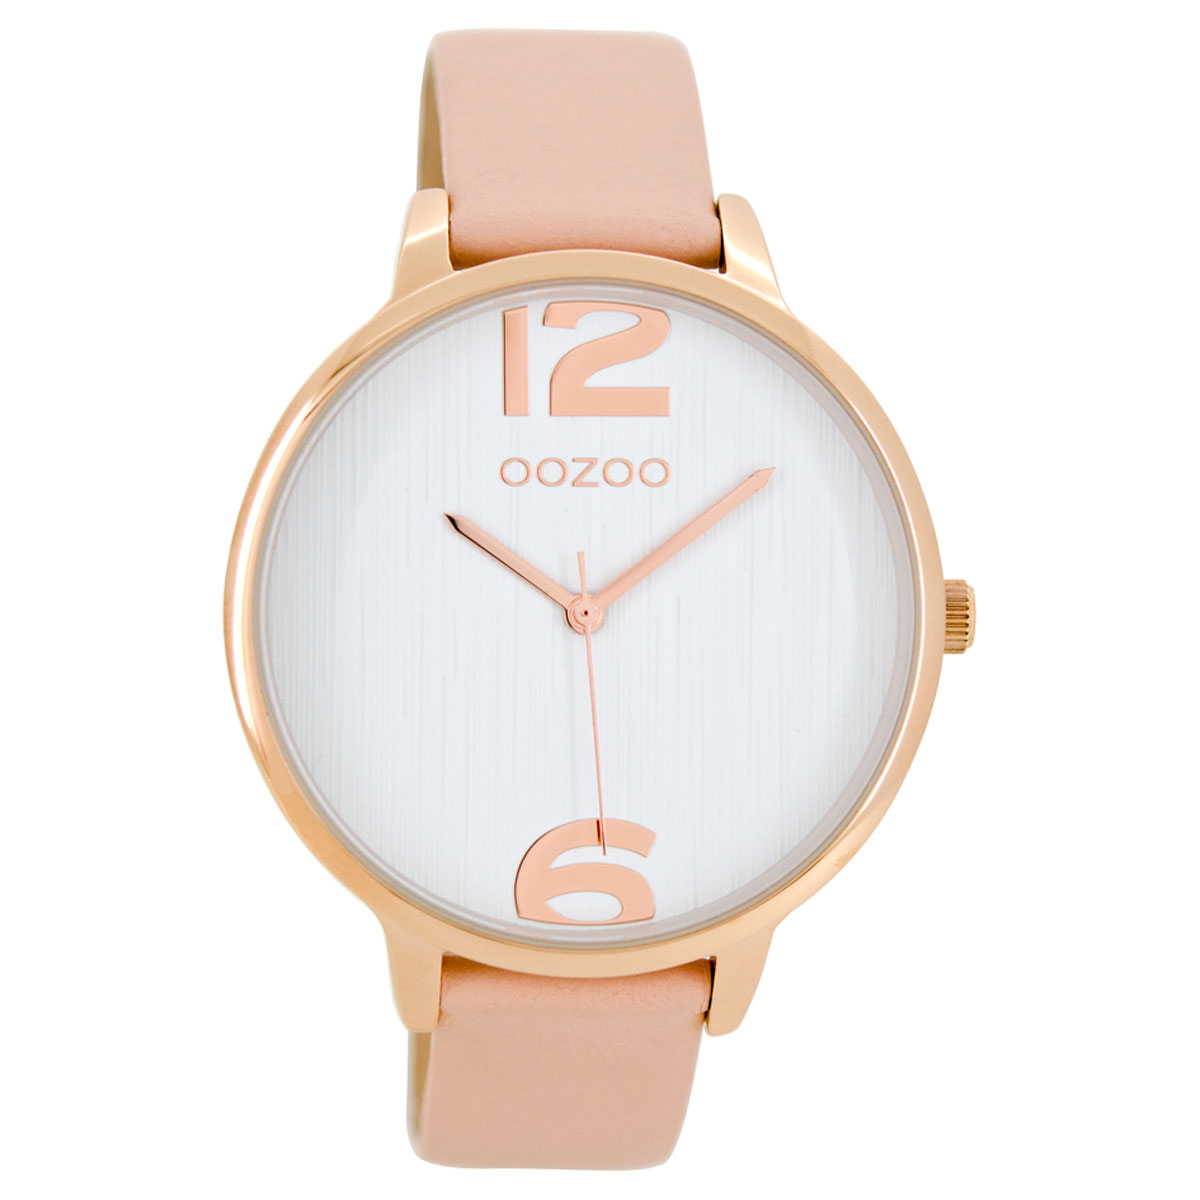 OOZOO Timepieces ladies watch with rose gold metallic frame and pink  leather strap C8657. Tap to expand 72bad043996